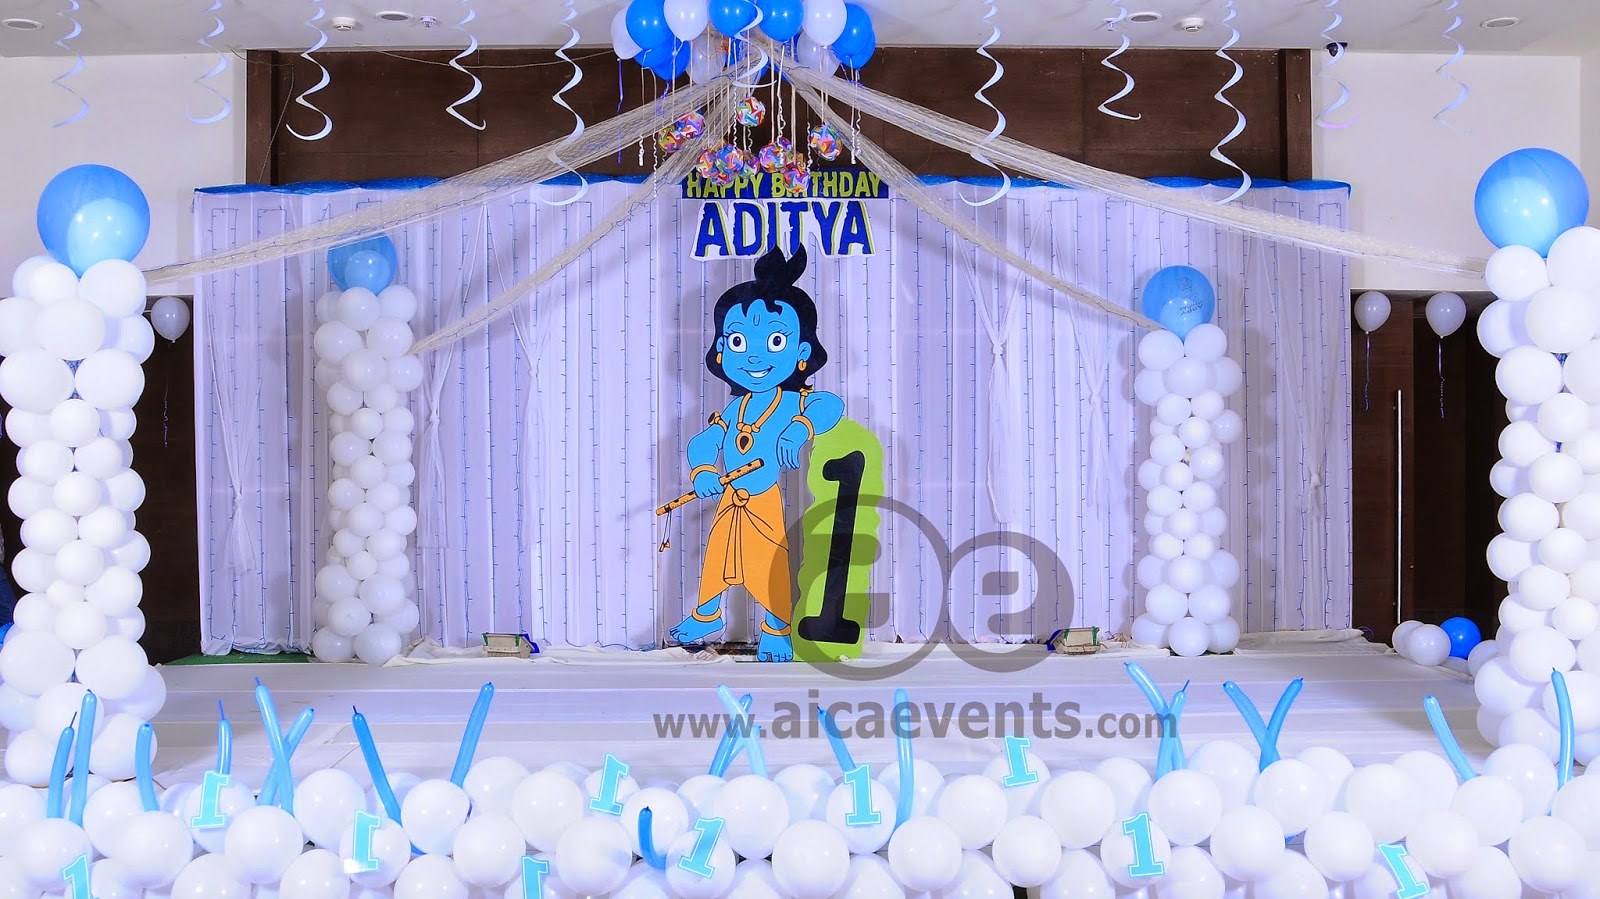 Birthday Decoration On Stage Image Inspiration of Cake and